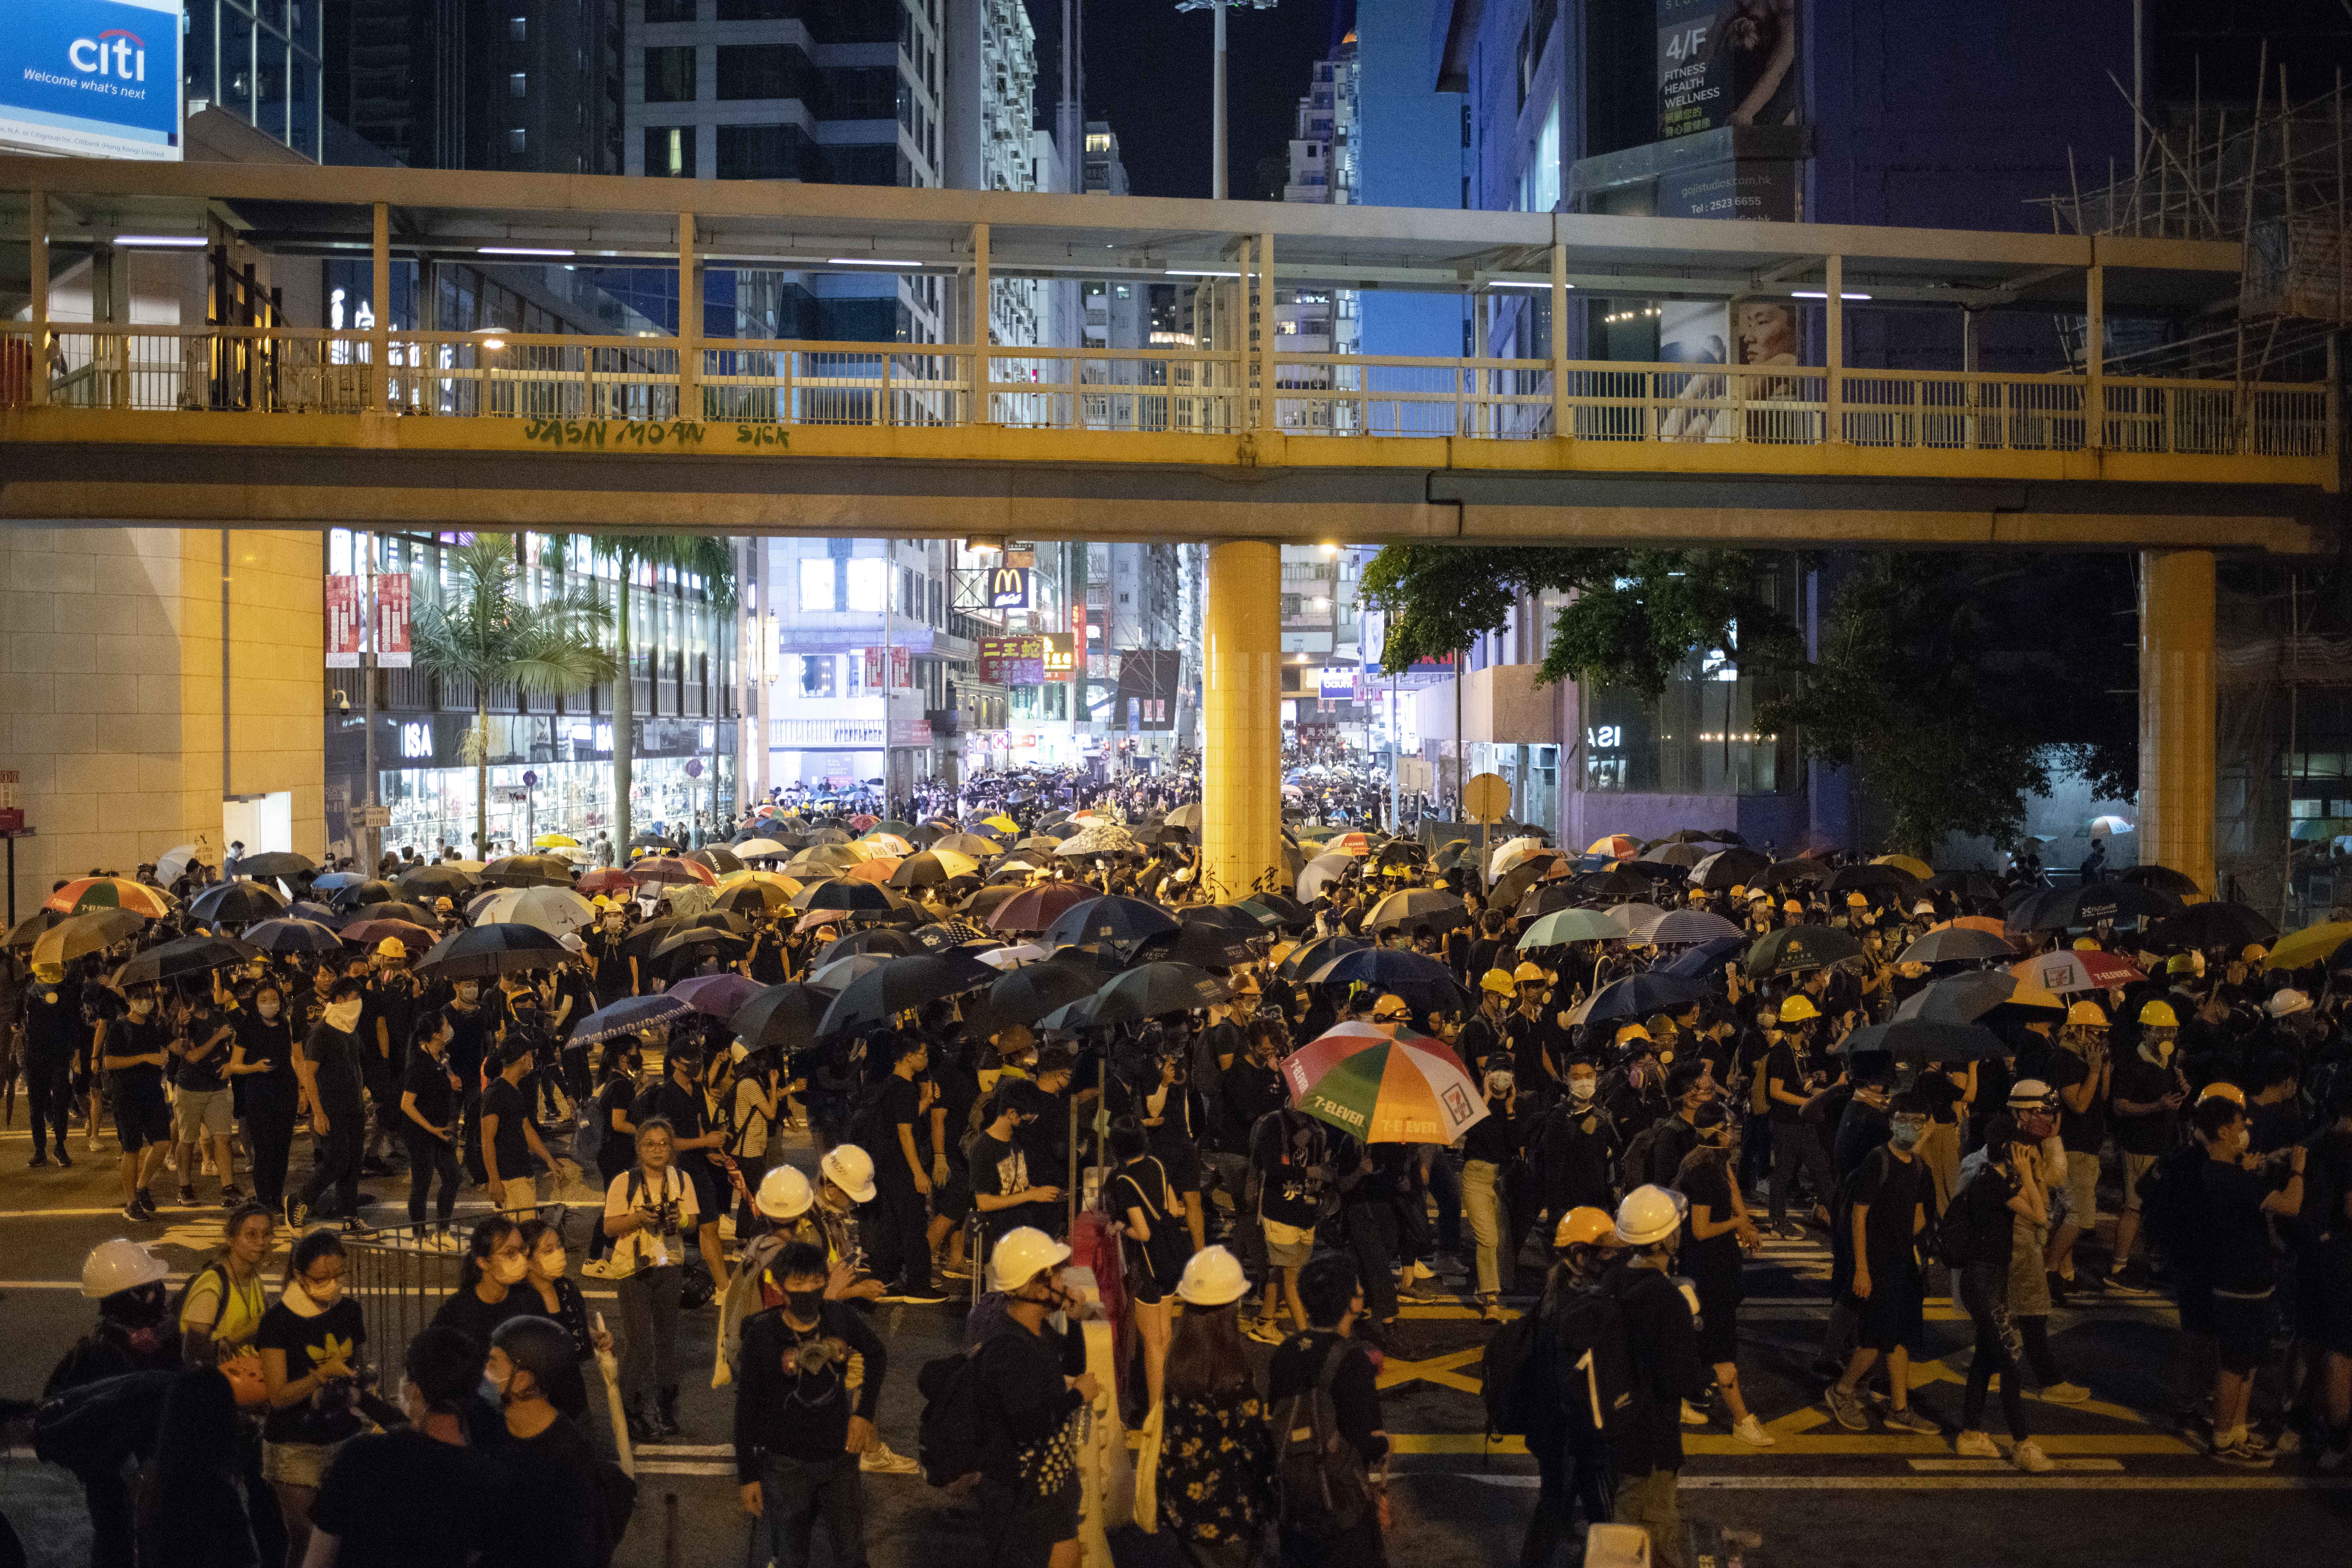 Protesters occupy Causeway Bay, one of Hong Kong's most crowded districts, on Sunday.